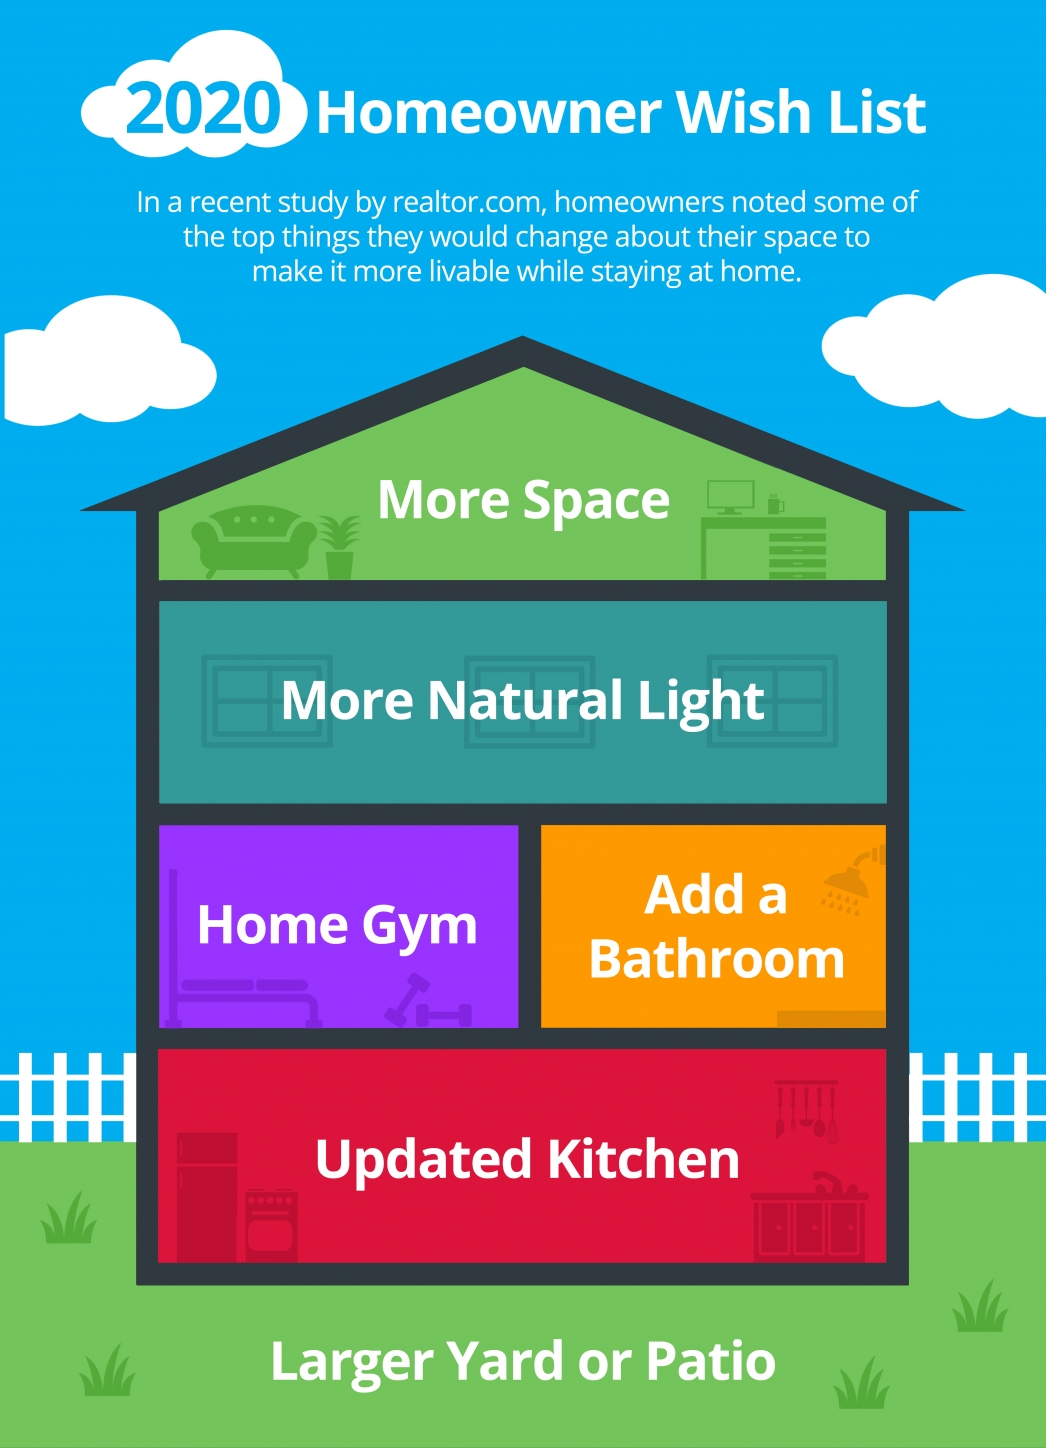 2020 Homeowner Wish List [INFOGRAPHIC] | MyKCM